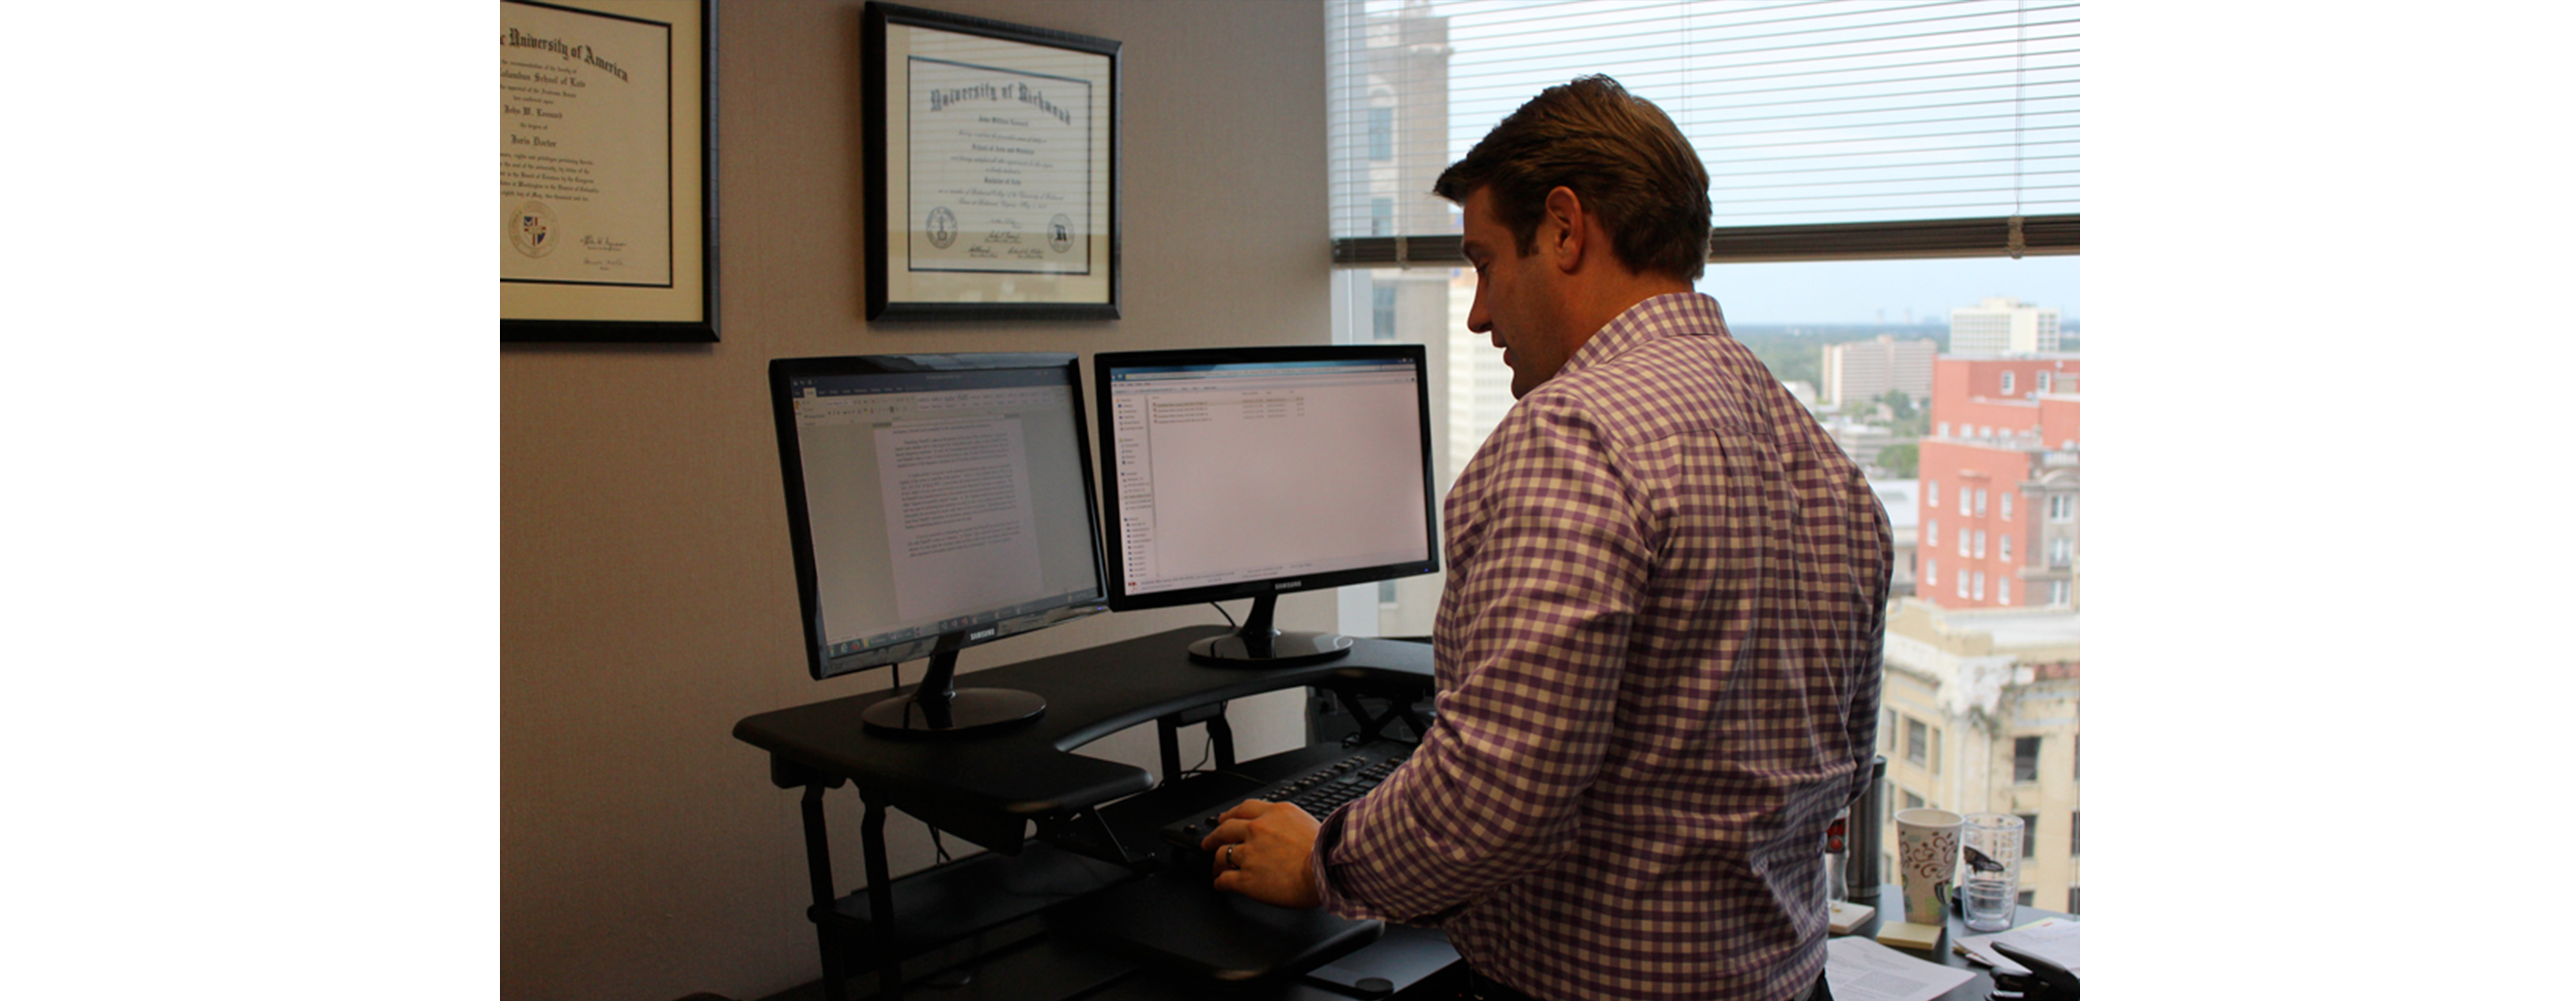 A young businessman is using a stand up desk in an office setting